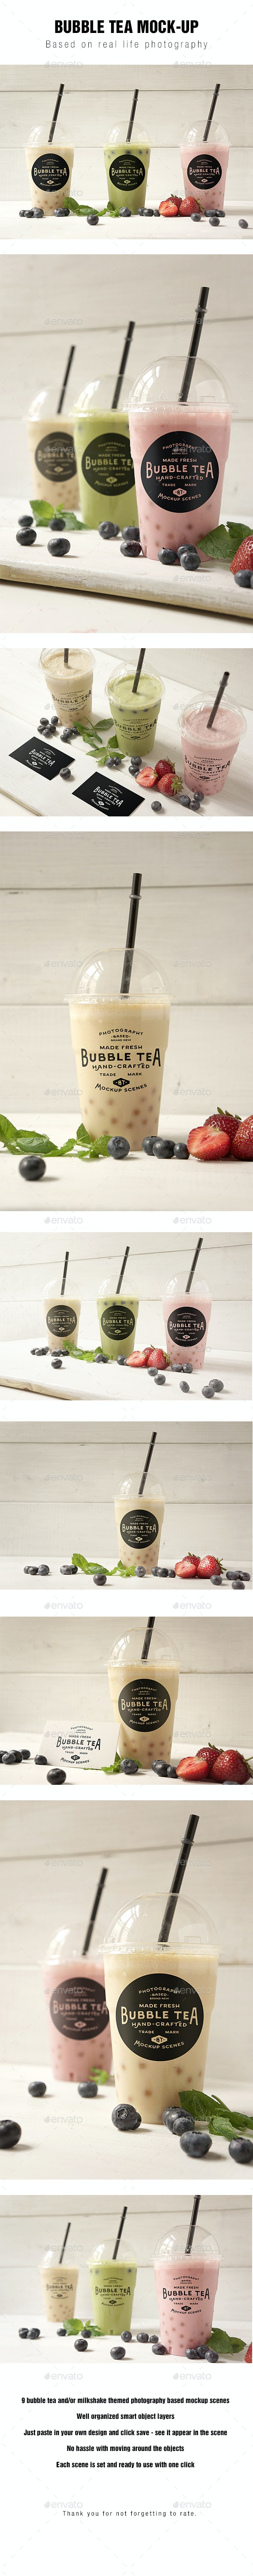 Bubble tea Mockup - Product Mock-Ups Graphics